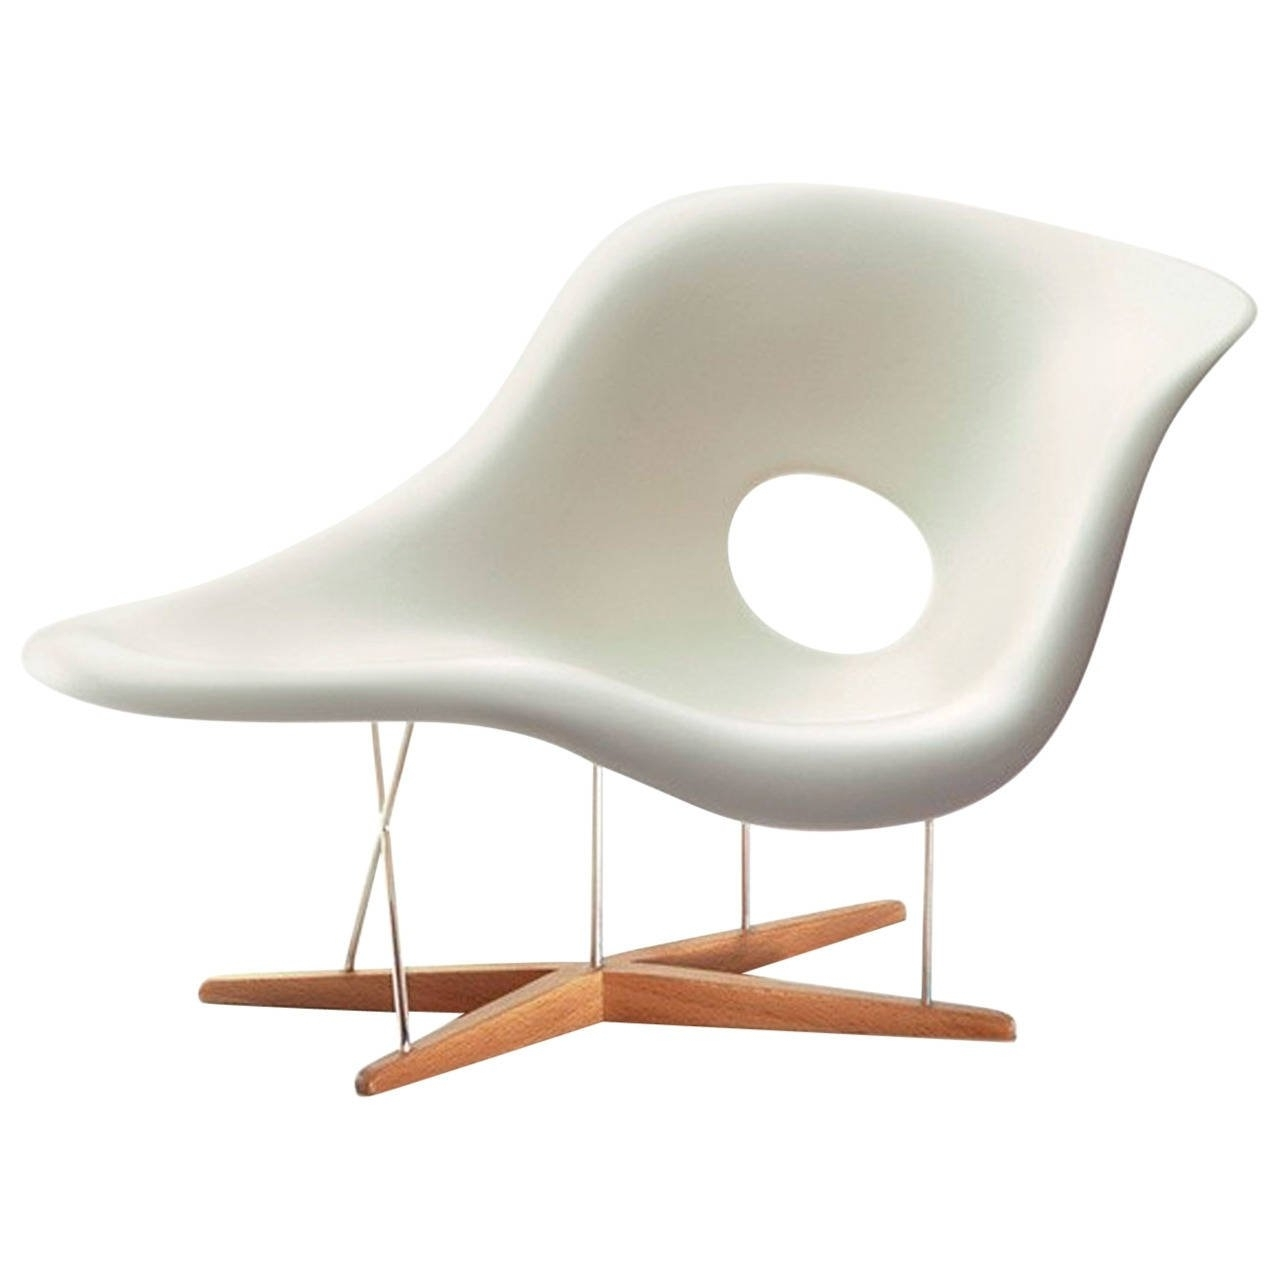 Chaise Divan Designedcharles And Ray Eames For Furniture Within Most Recently Released Eames La Chaises (View 3 of 15)